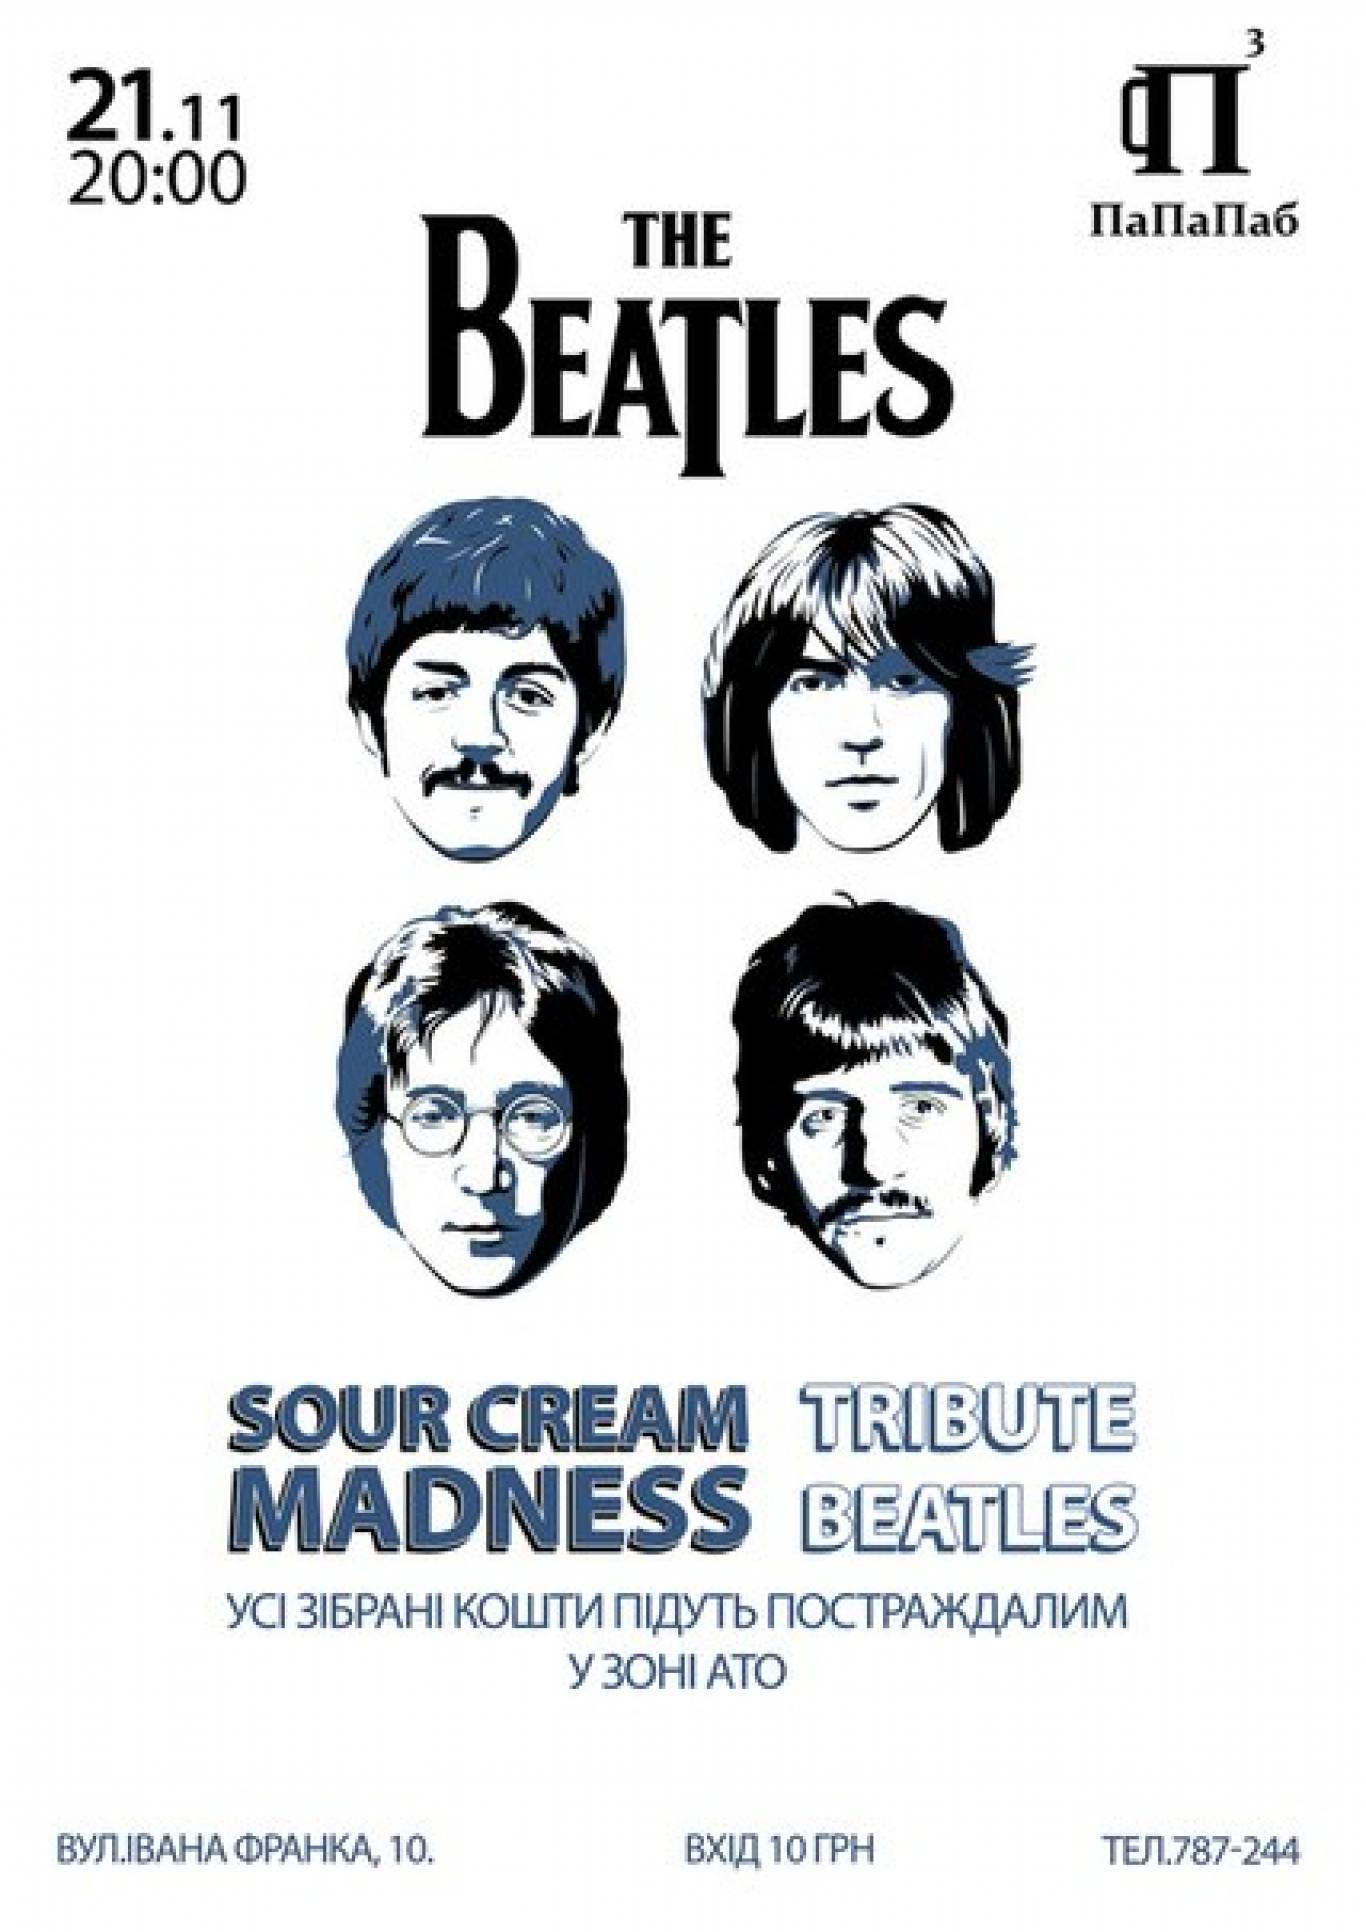 Sour Cream Madness - tribute Beatles